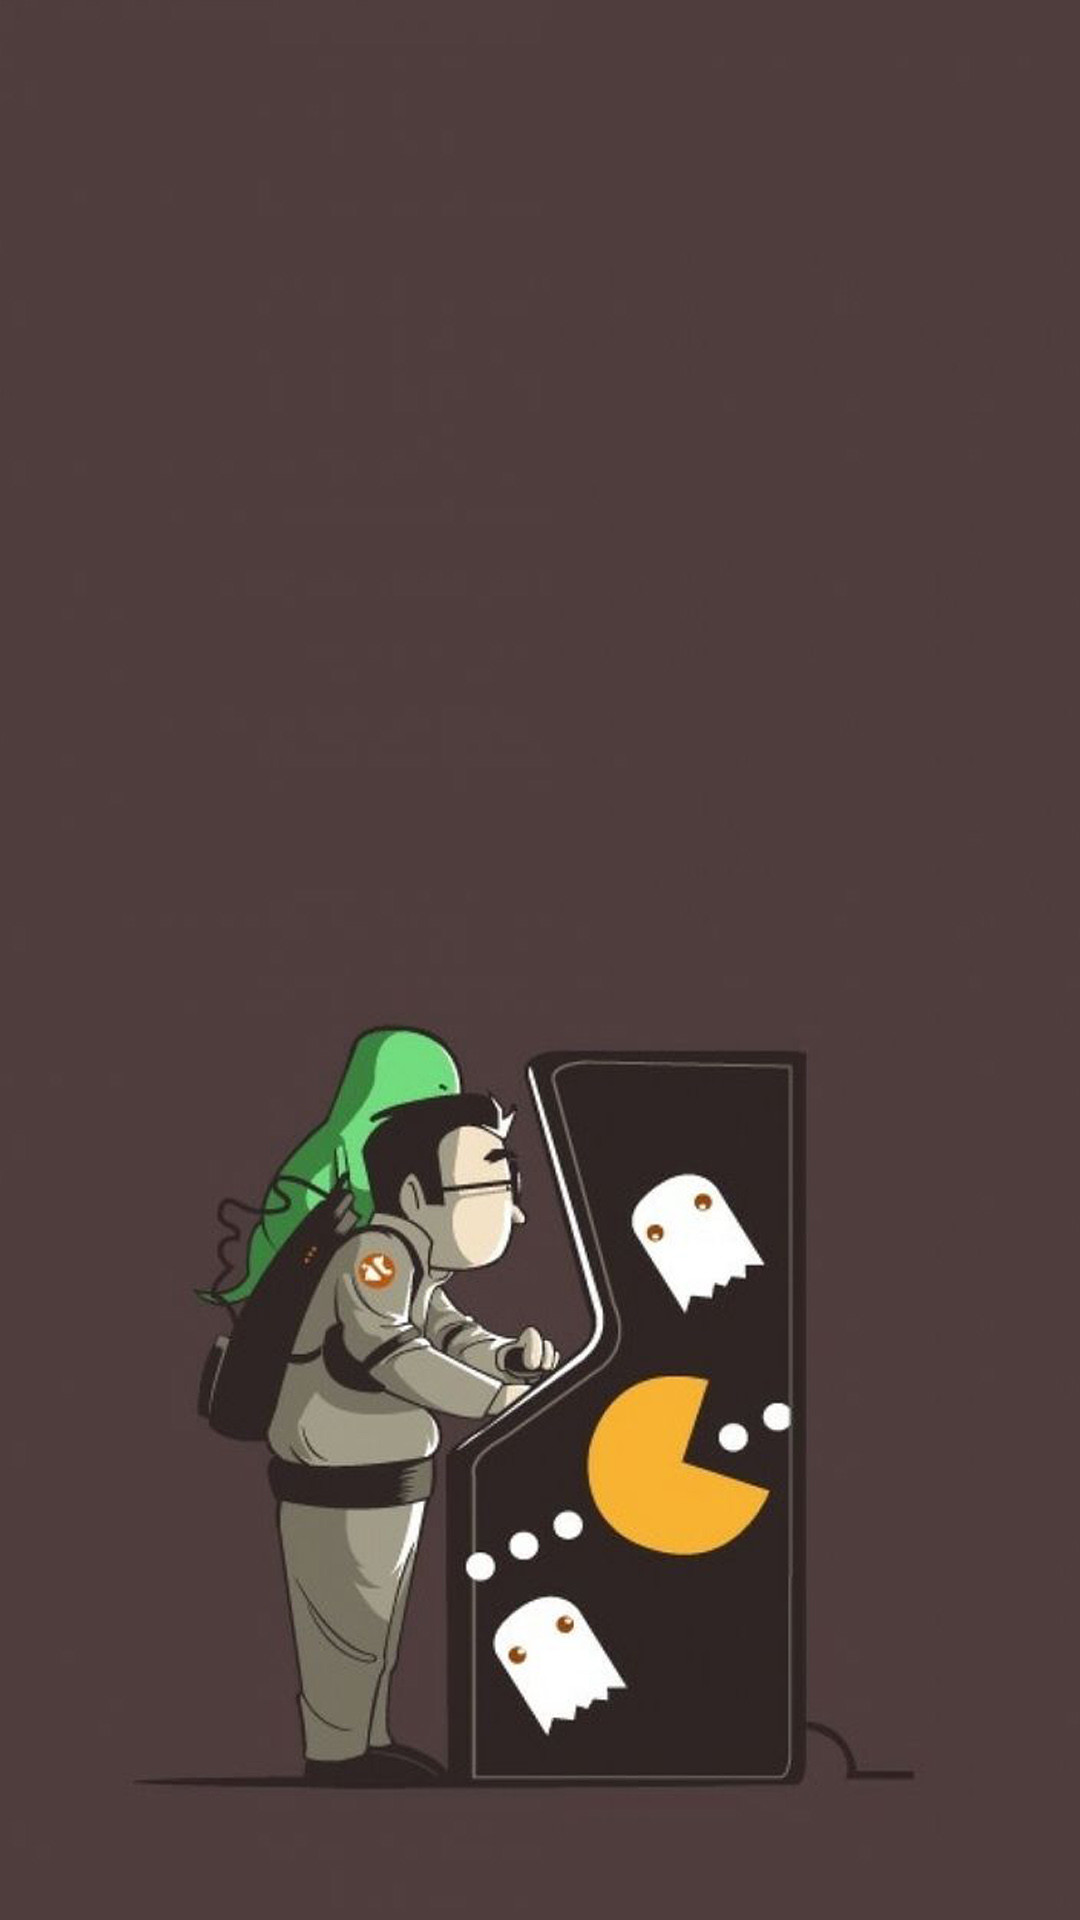 Pacman Wallpaper Iphone X Ghostbuster Wallpaper 74 Images